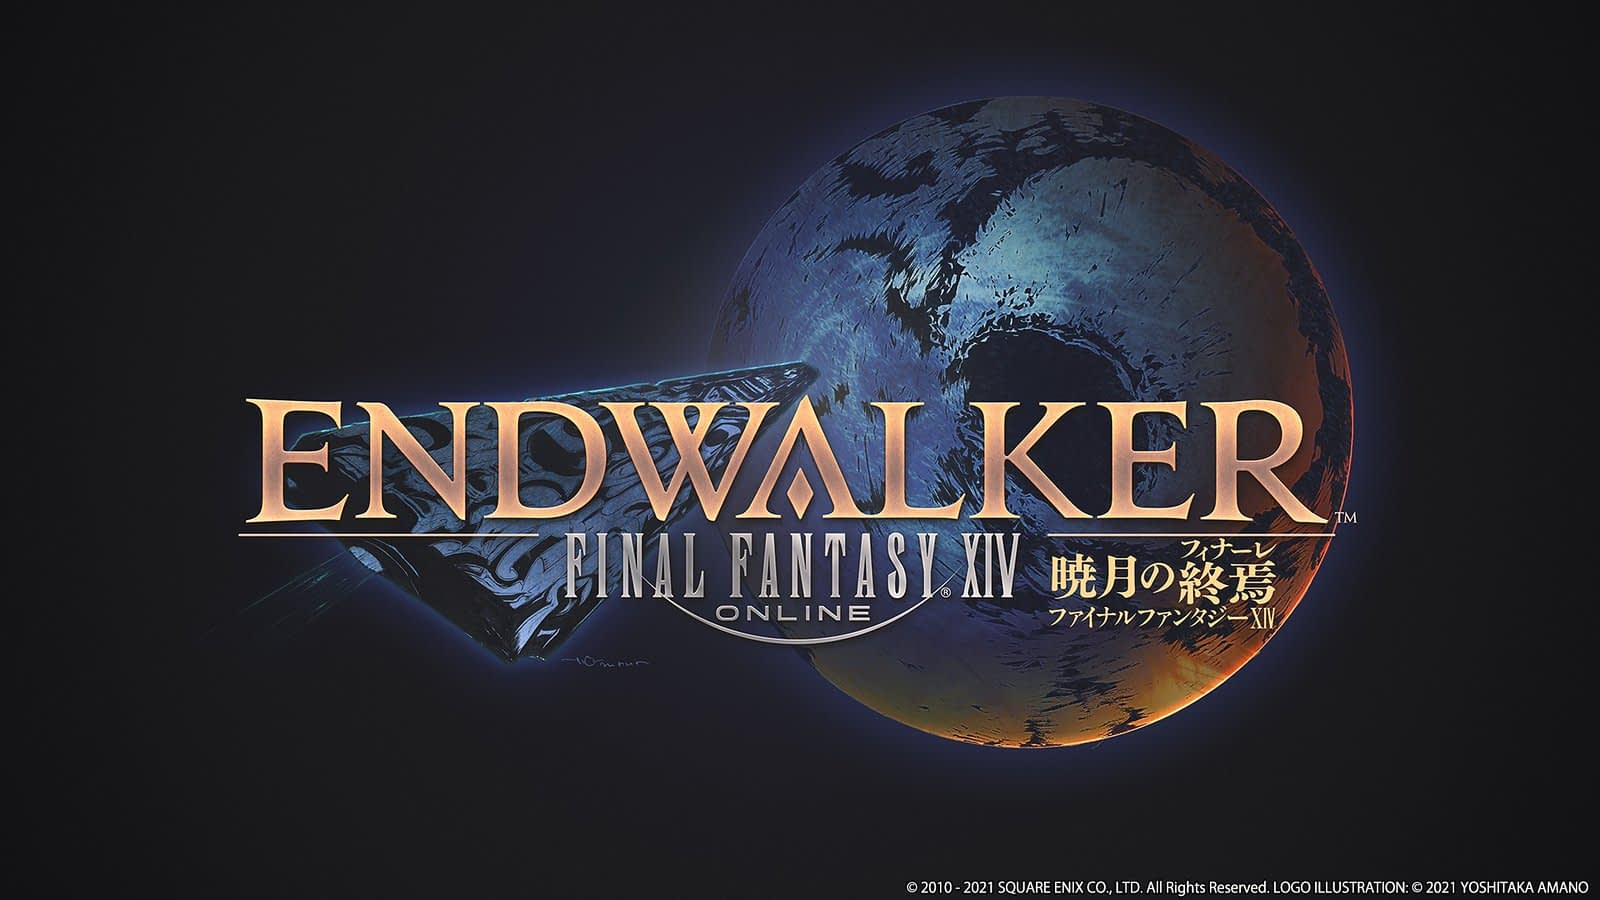 Endwalker, Final Fantasy XIV Online's next expansion, is coming Fall 2021 to PS5 and PS4 1